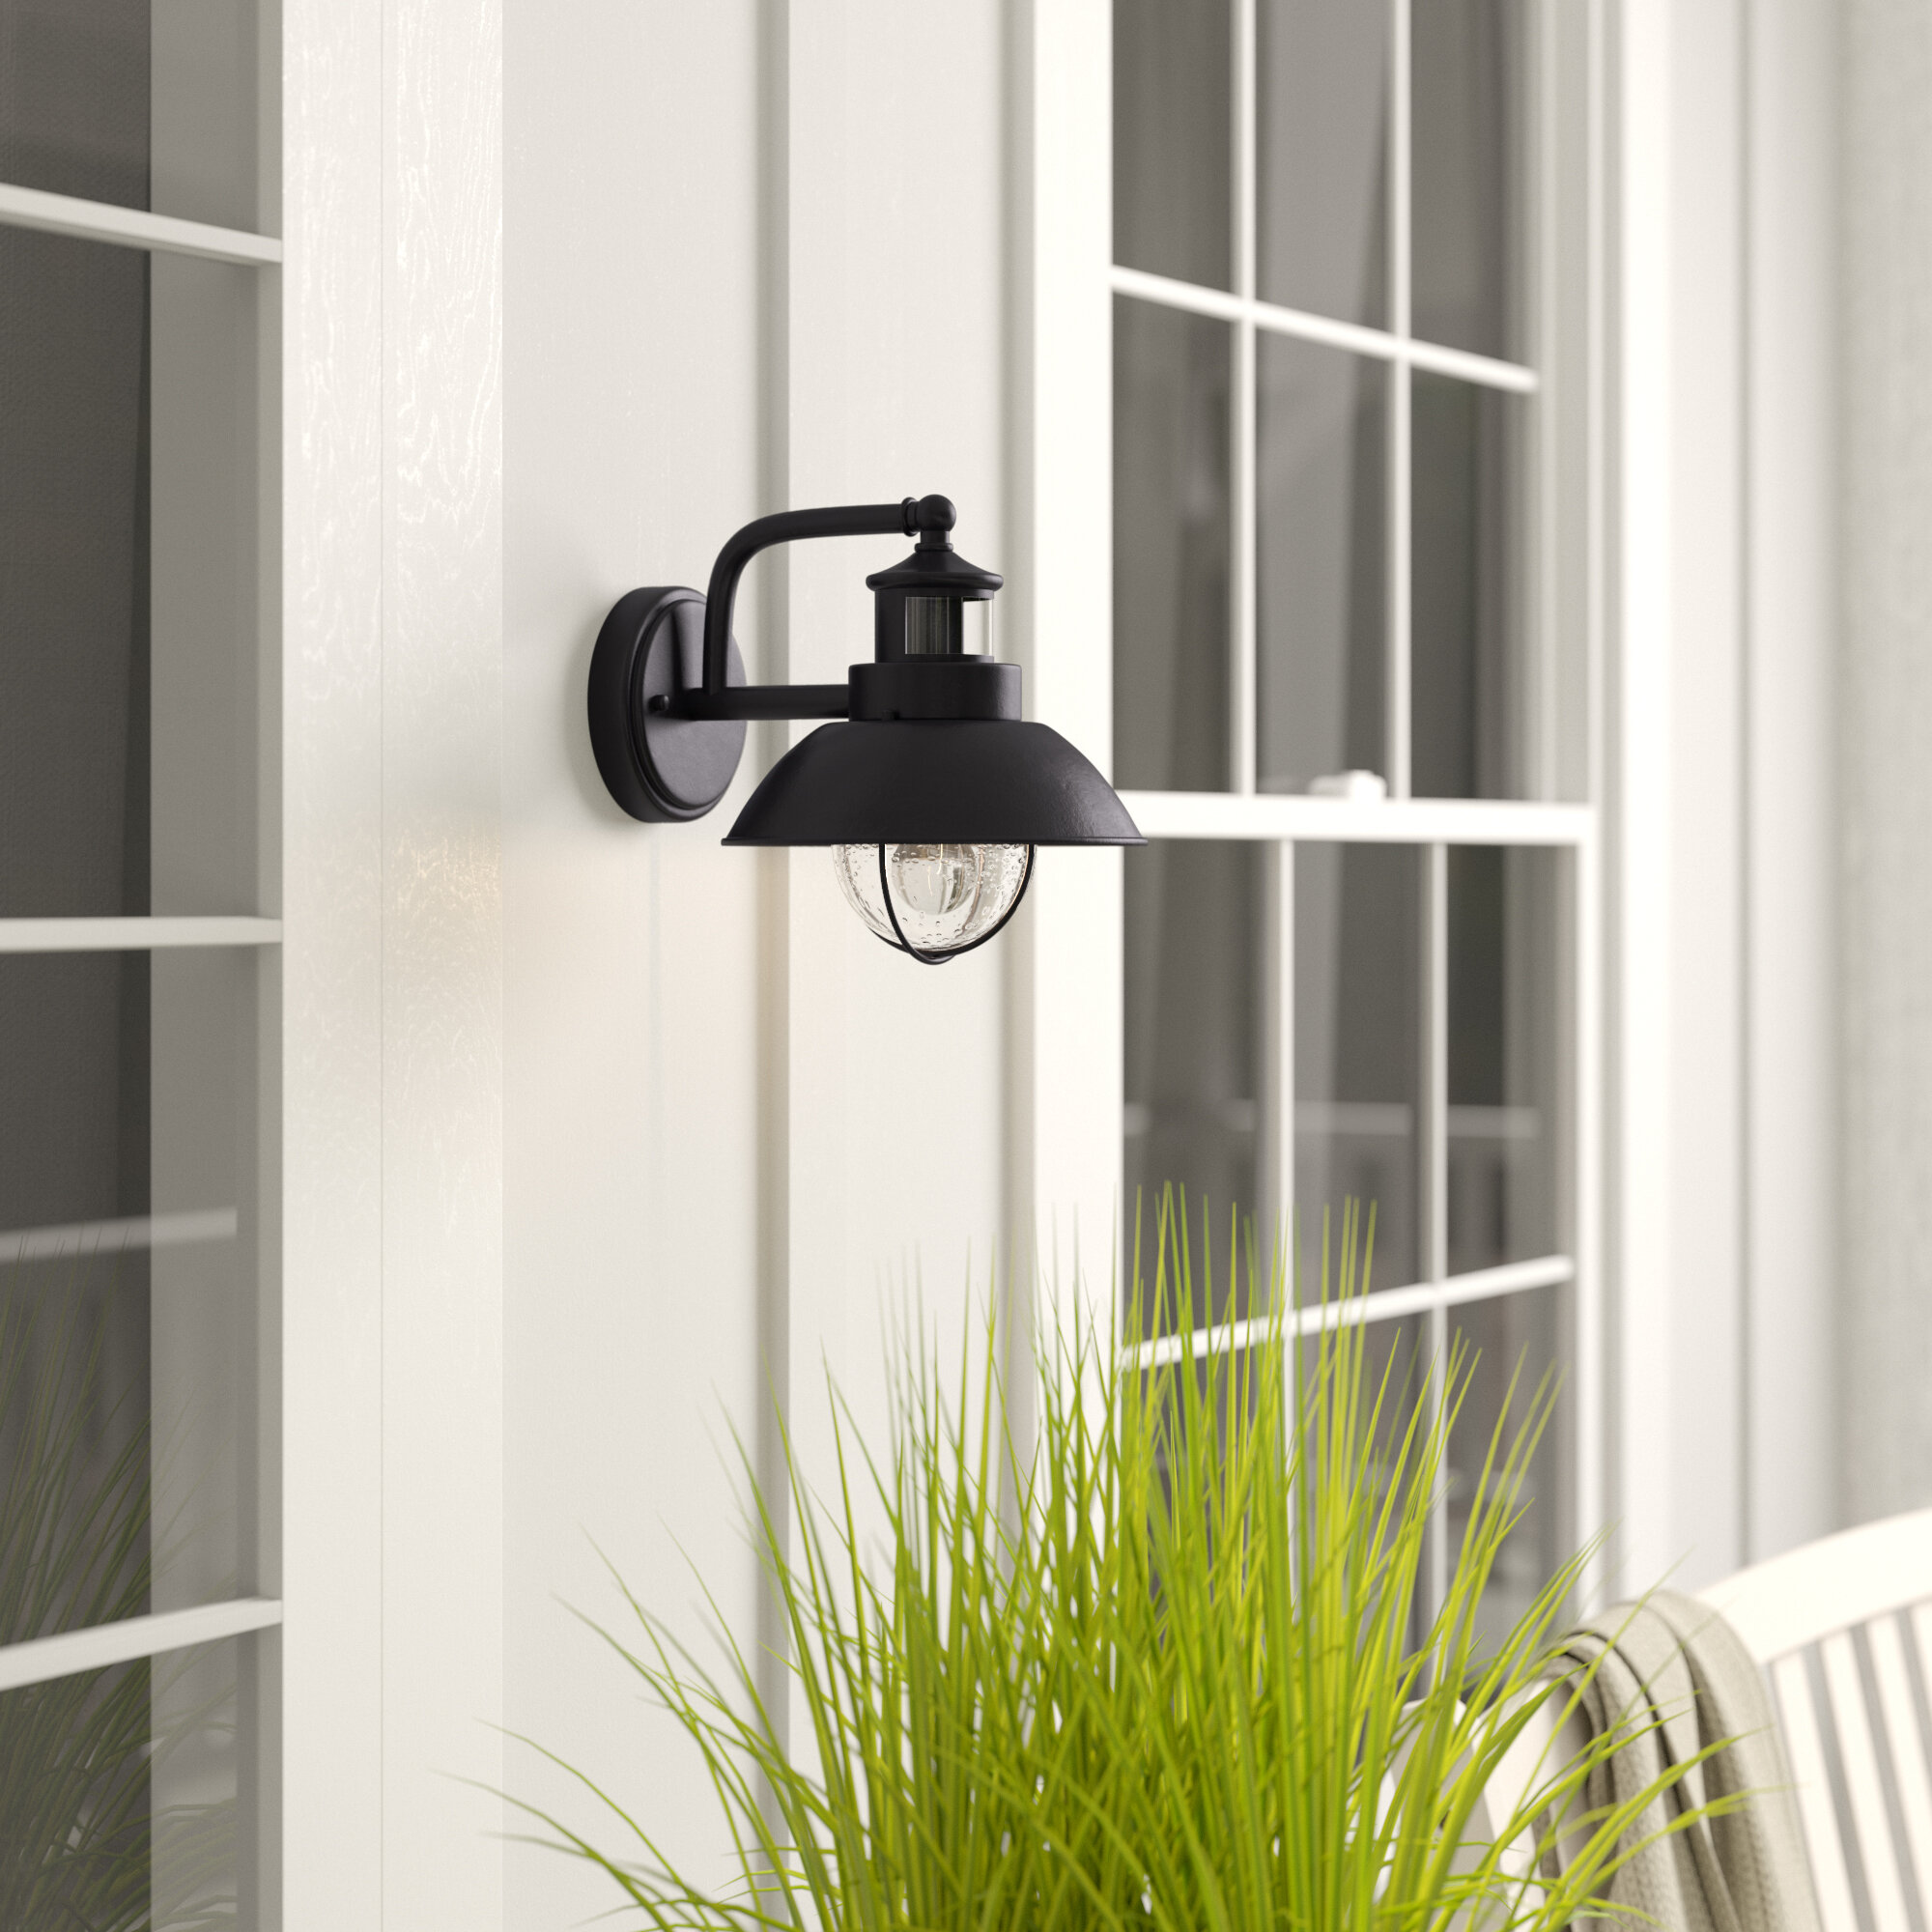 Beachcrest Home Archibald Dualux Outdoor Barn Light With Motion Sensor